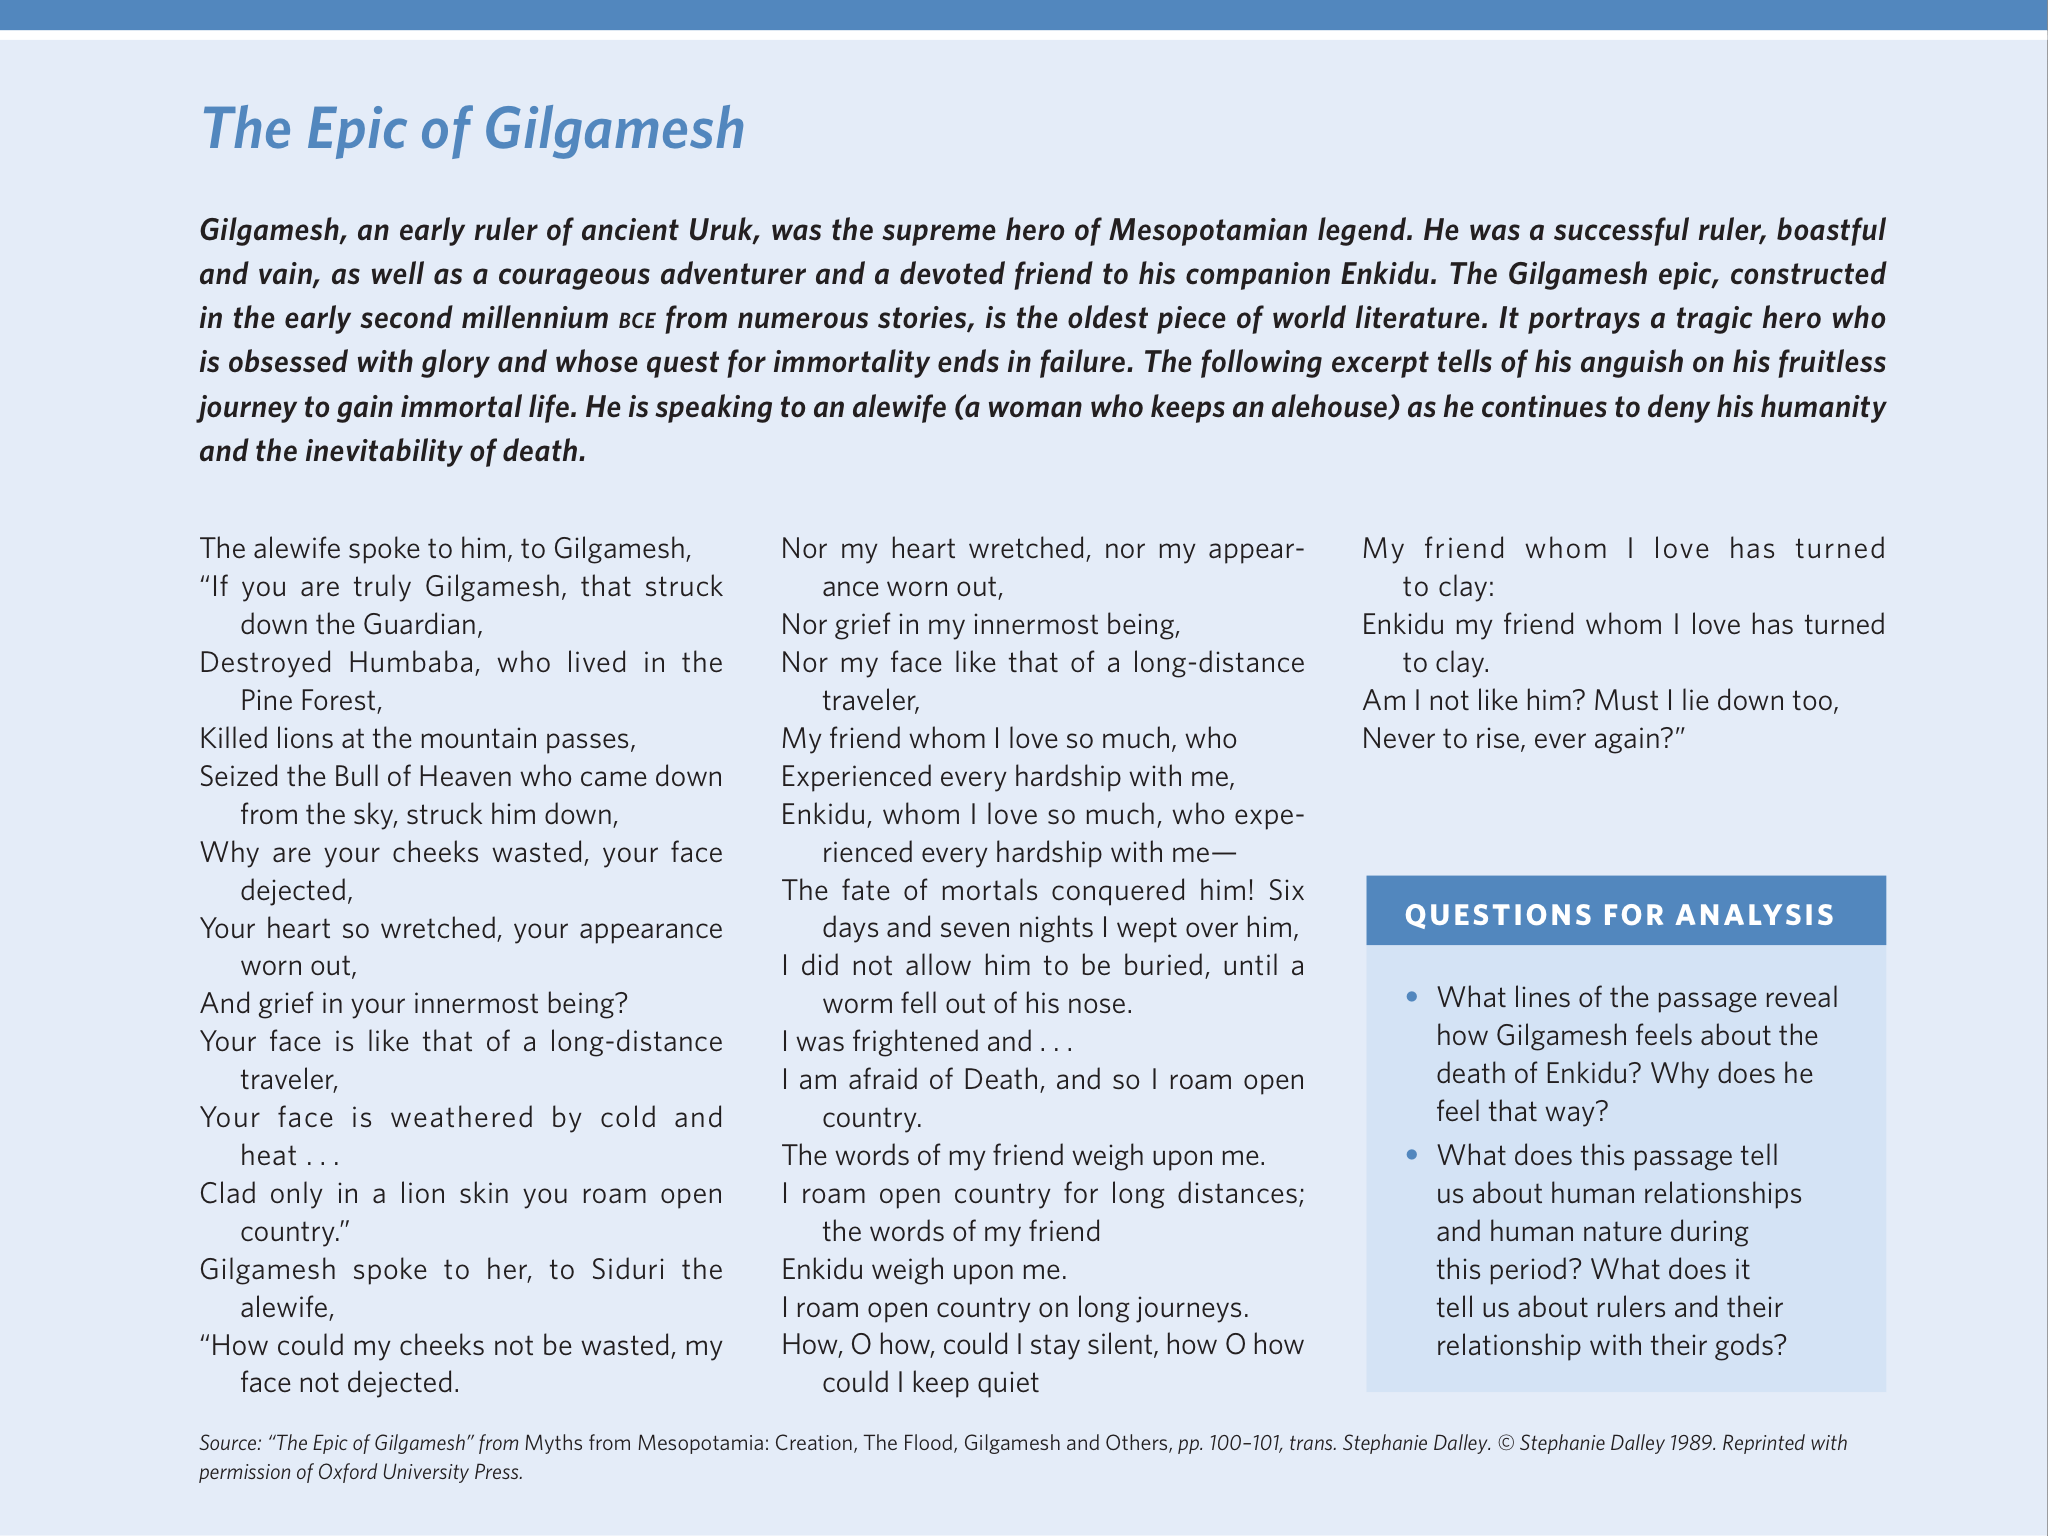 what does this passage from the epic of gilgamesh tell us about  what does this passage from the epic of gilgamesh tell us about human relationships and human nature during this period and what does it tell us about